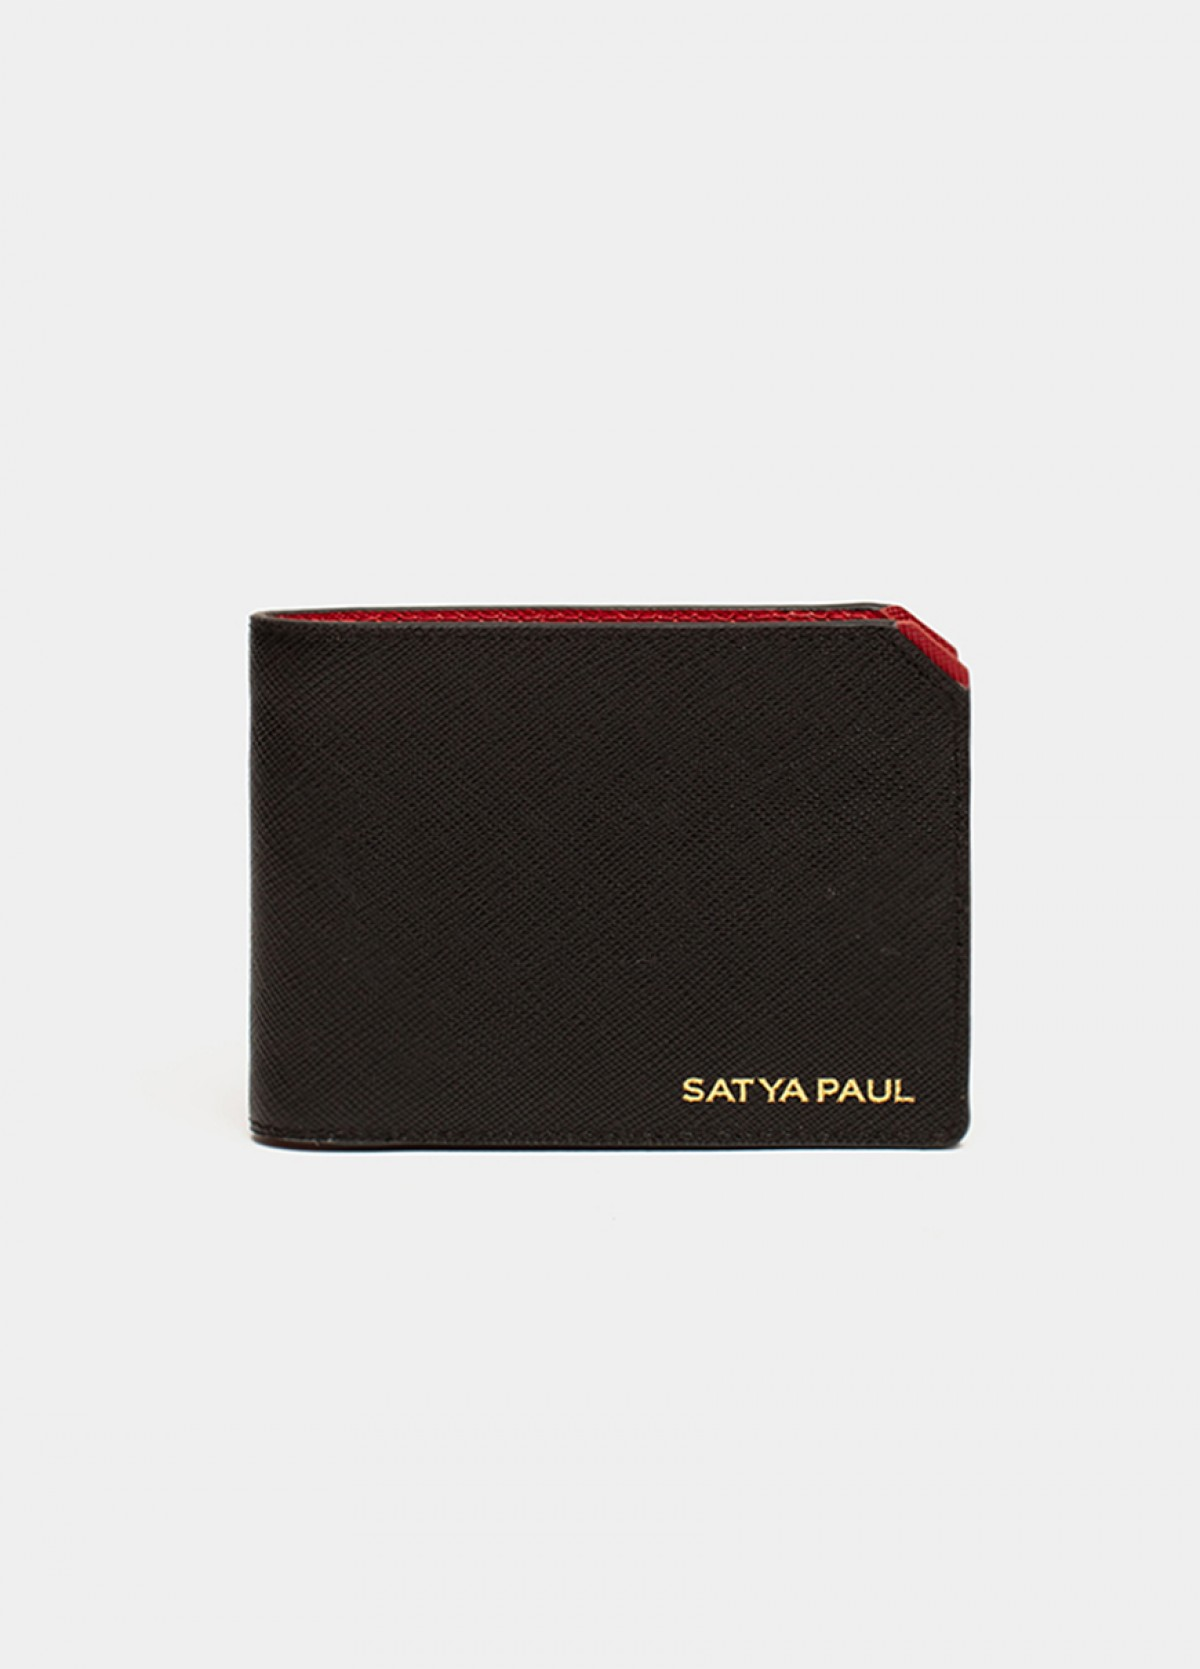 The Black Leather Wallet